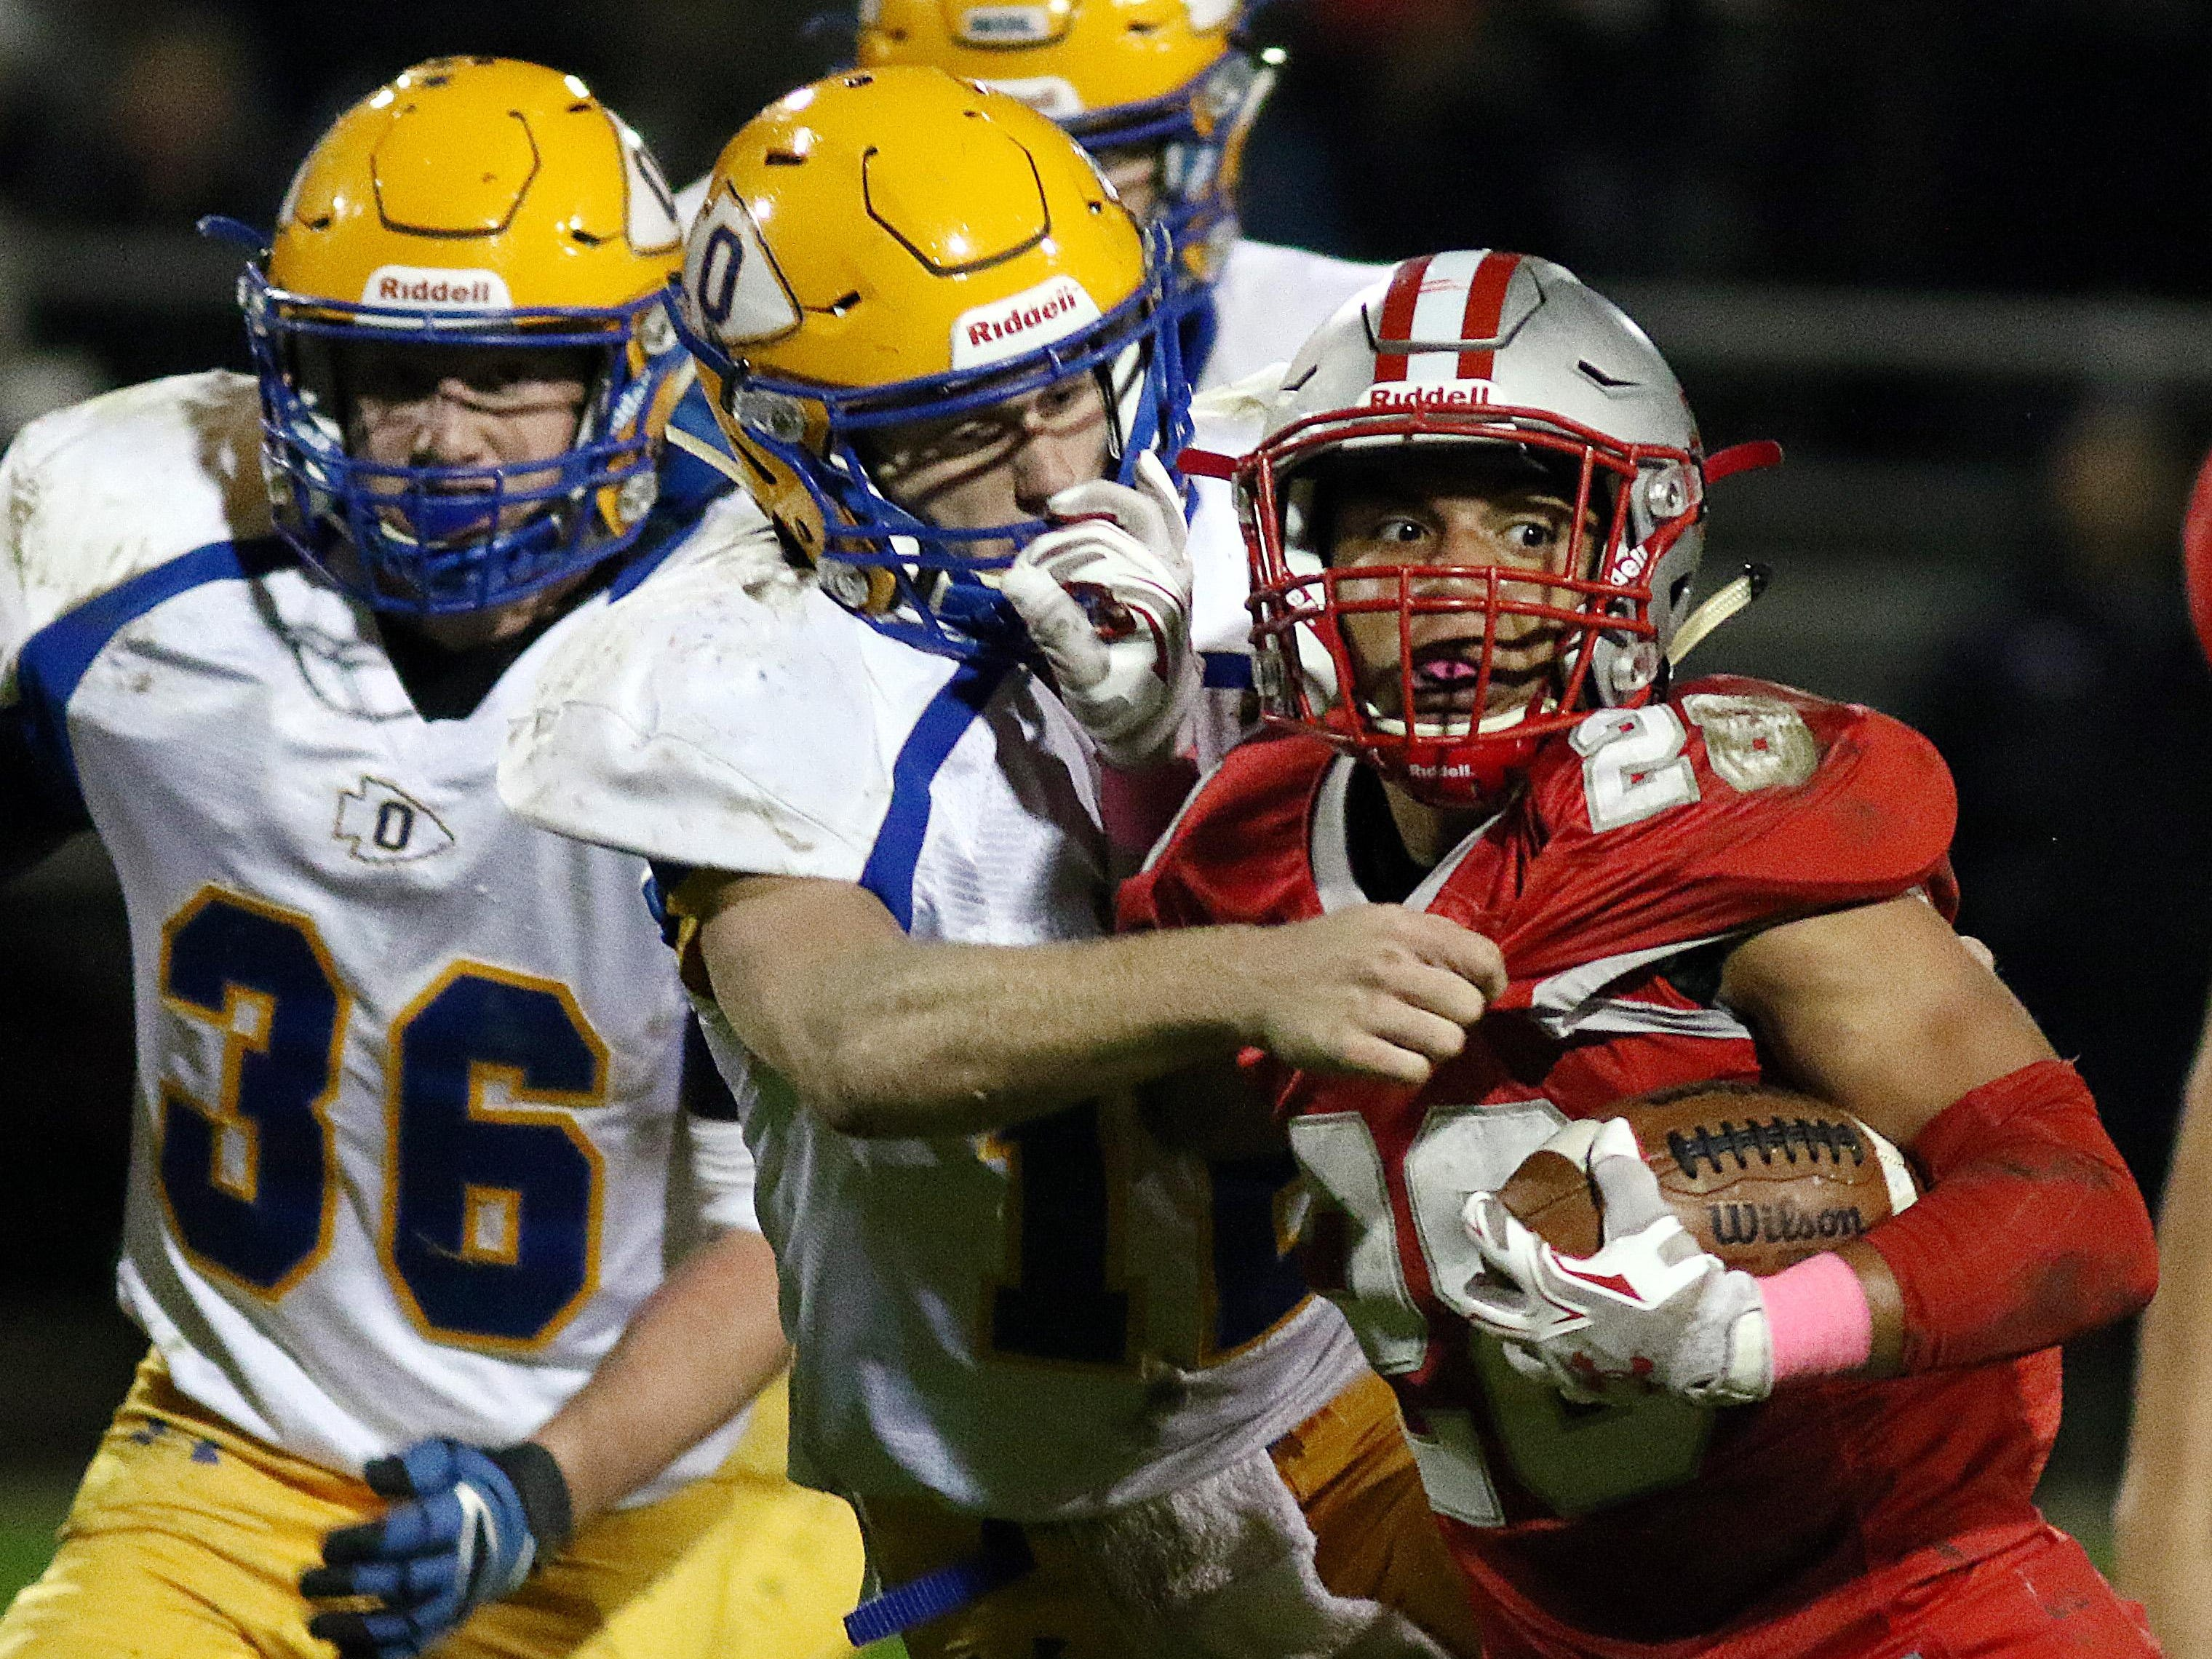 Shelby's Devon Brooks breaks some tackles during their game Friday night against Ontario.